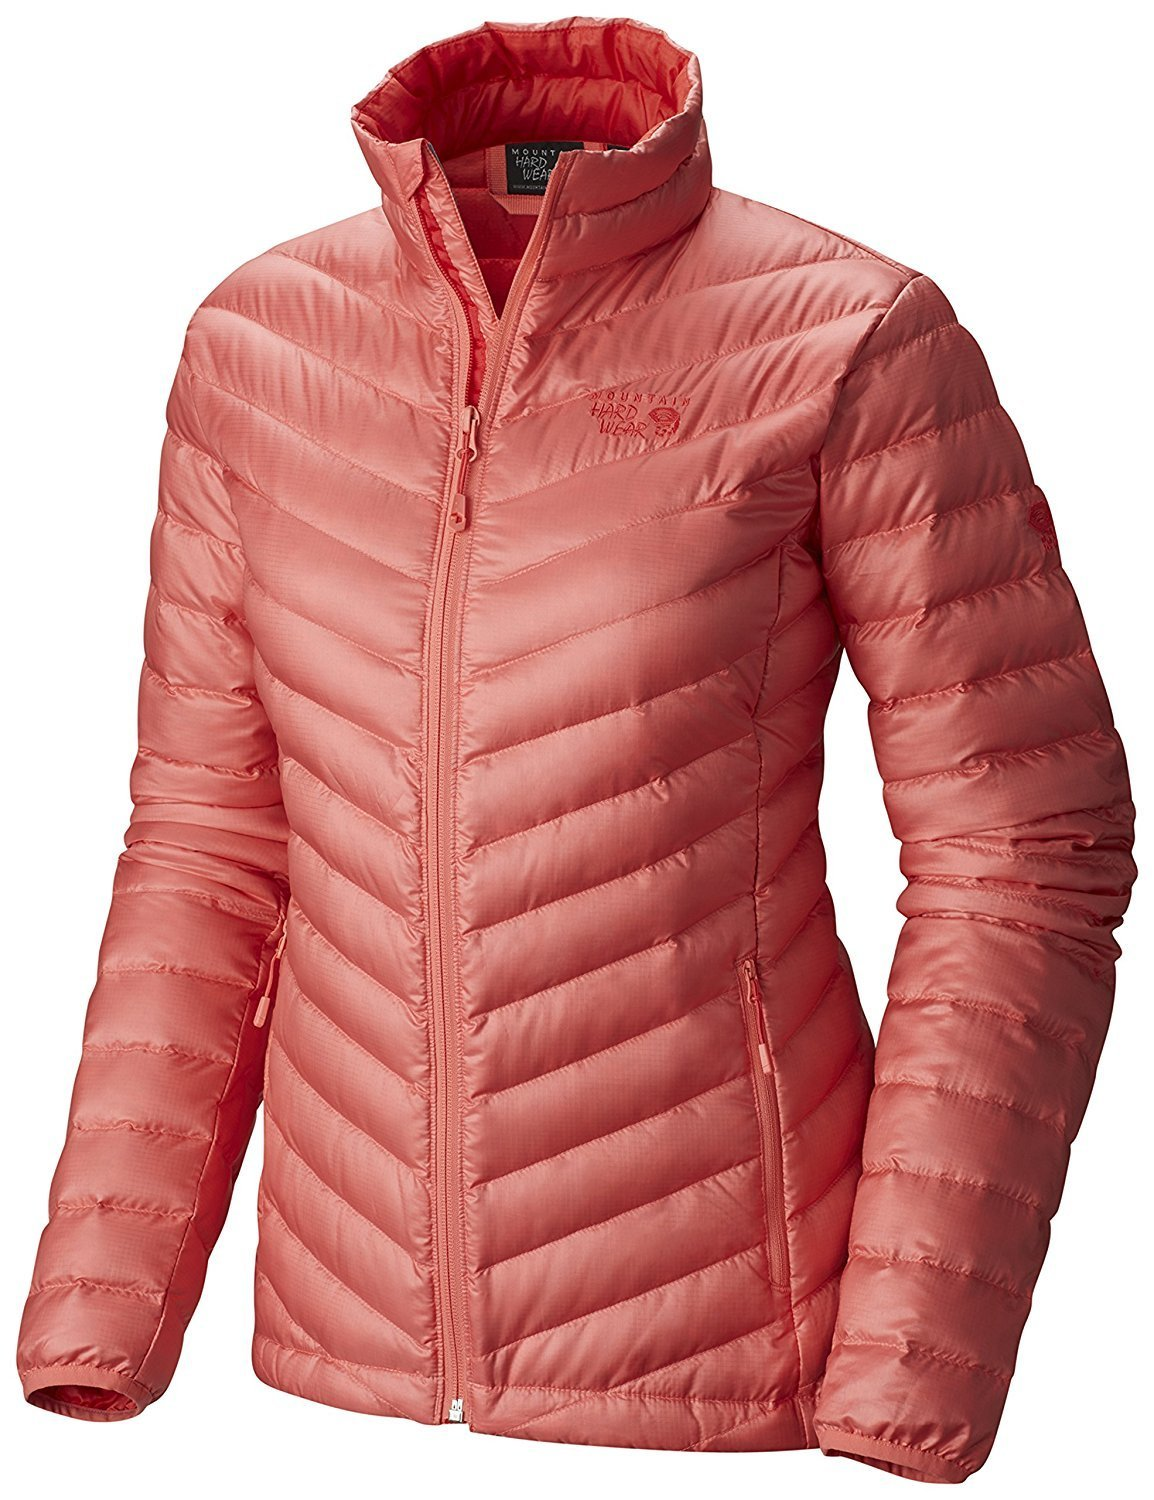 Mountain Hardwear Nitrous 800 Down Jacket - Women's XLarge